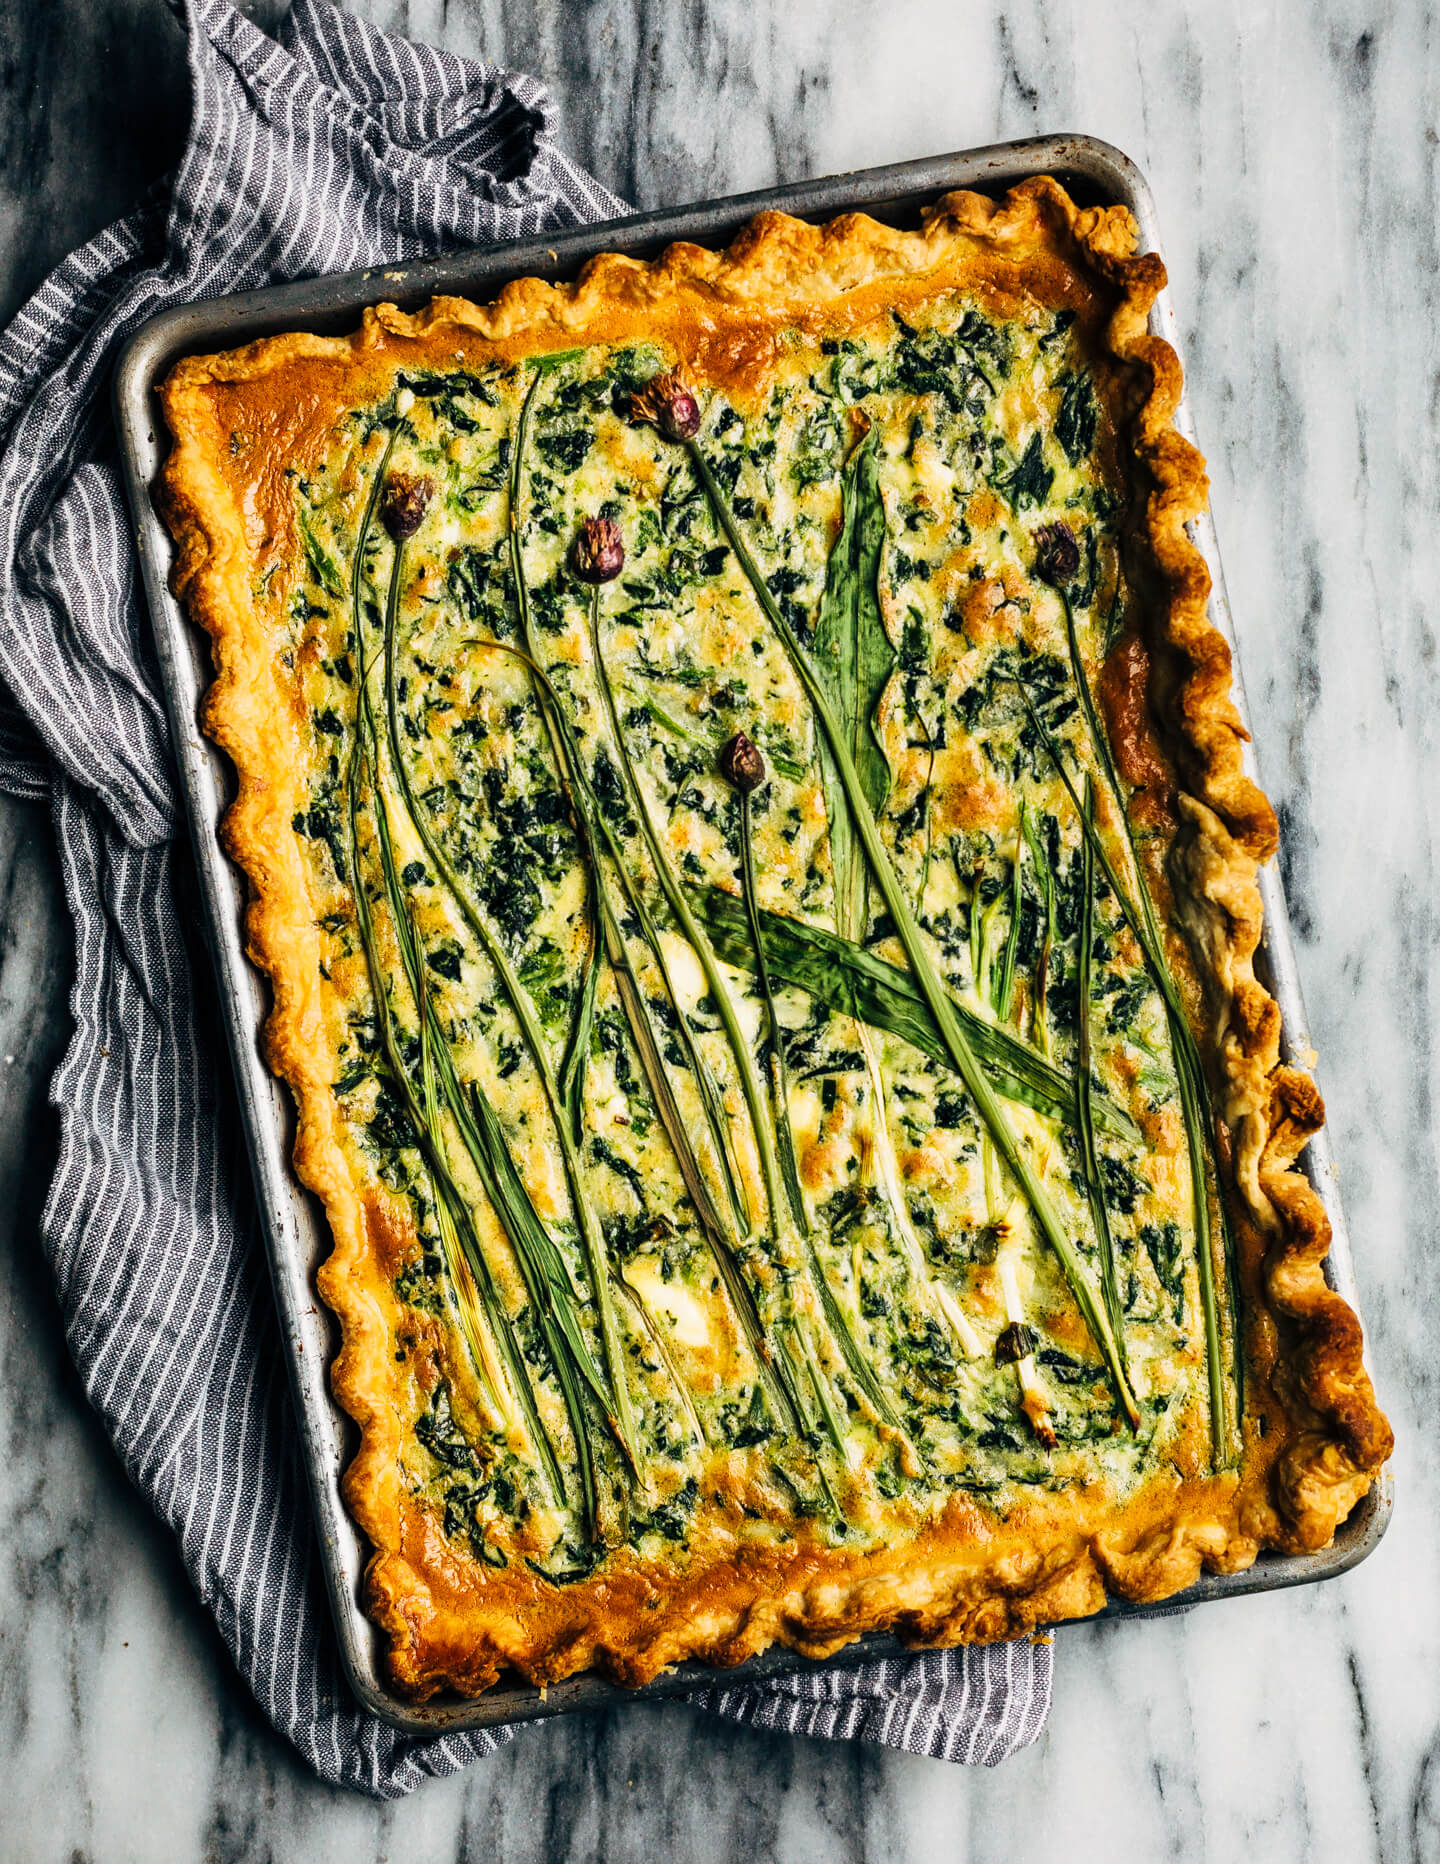 Sheet Pan Spinach Quiche With Ramps Green Garlic And Chive Blossoms